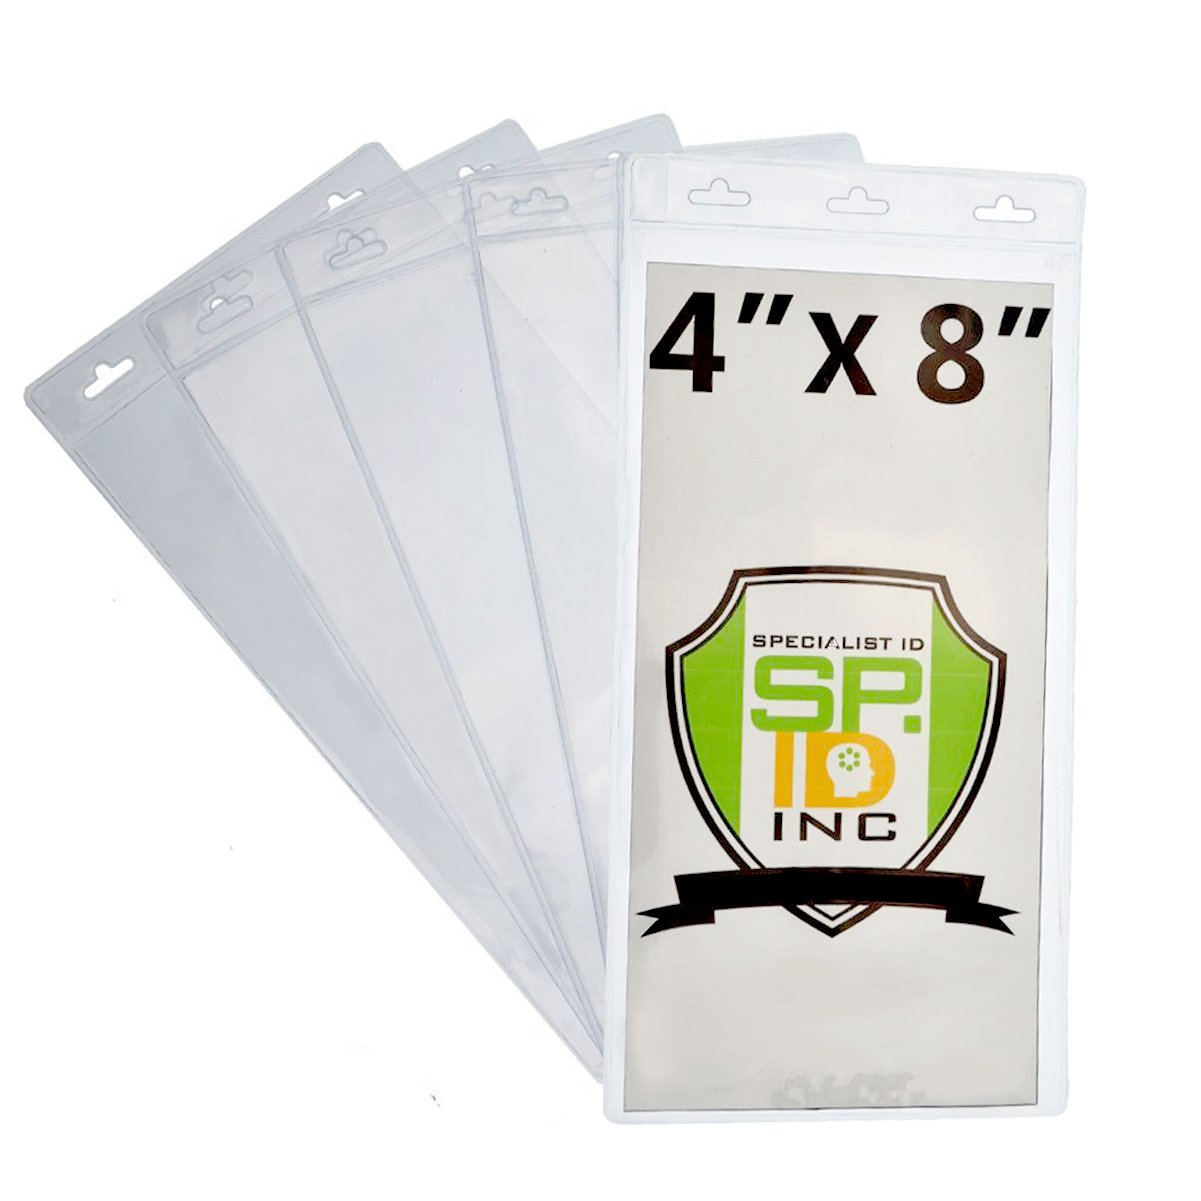 10 Pack - Extra Large 4 X 8 Clear Plastic Ticket Holders (Really Big) 4X8 Inch Big Credential ID Protector Sleeves for Sporting Events and Concerts - 3 Lanyard Slots at Top to Work with Any Lanyard Specialist ID